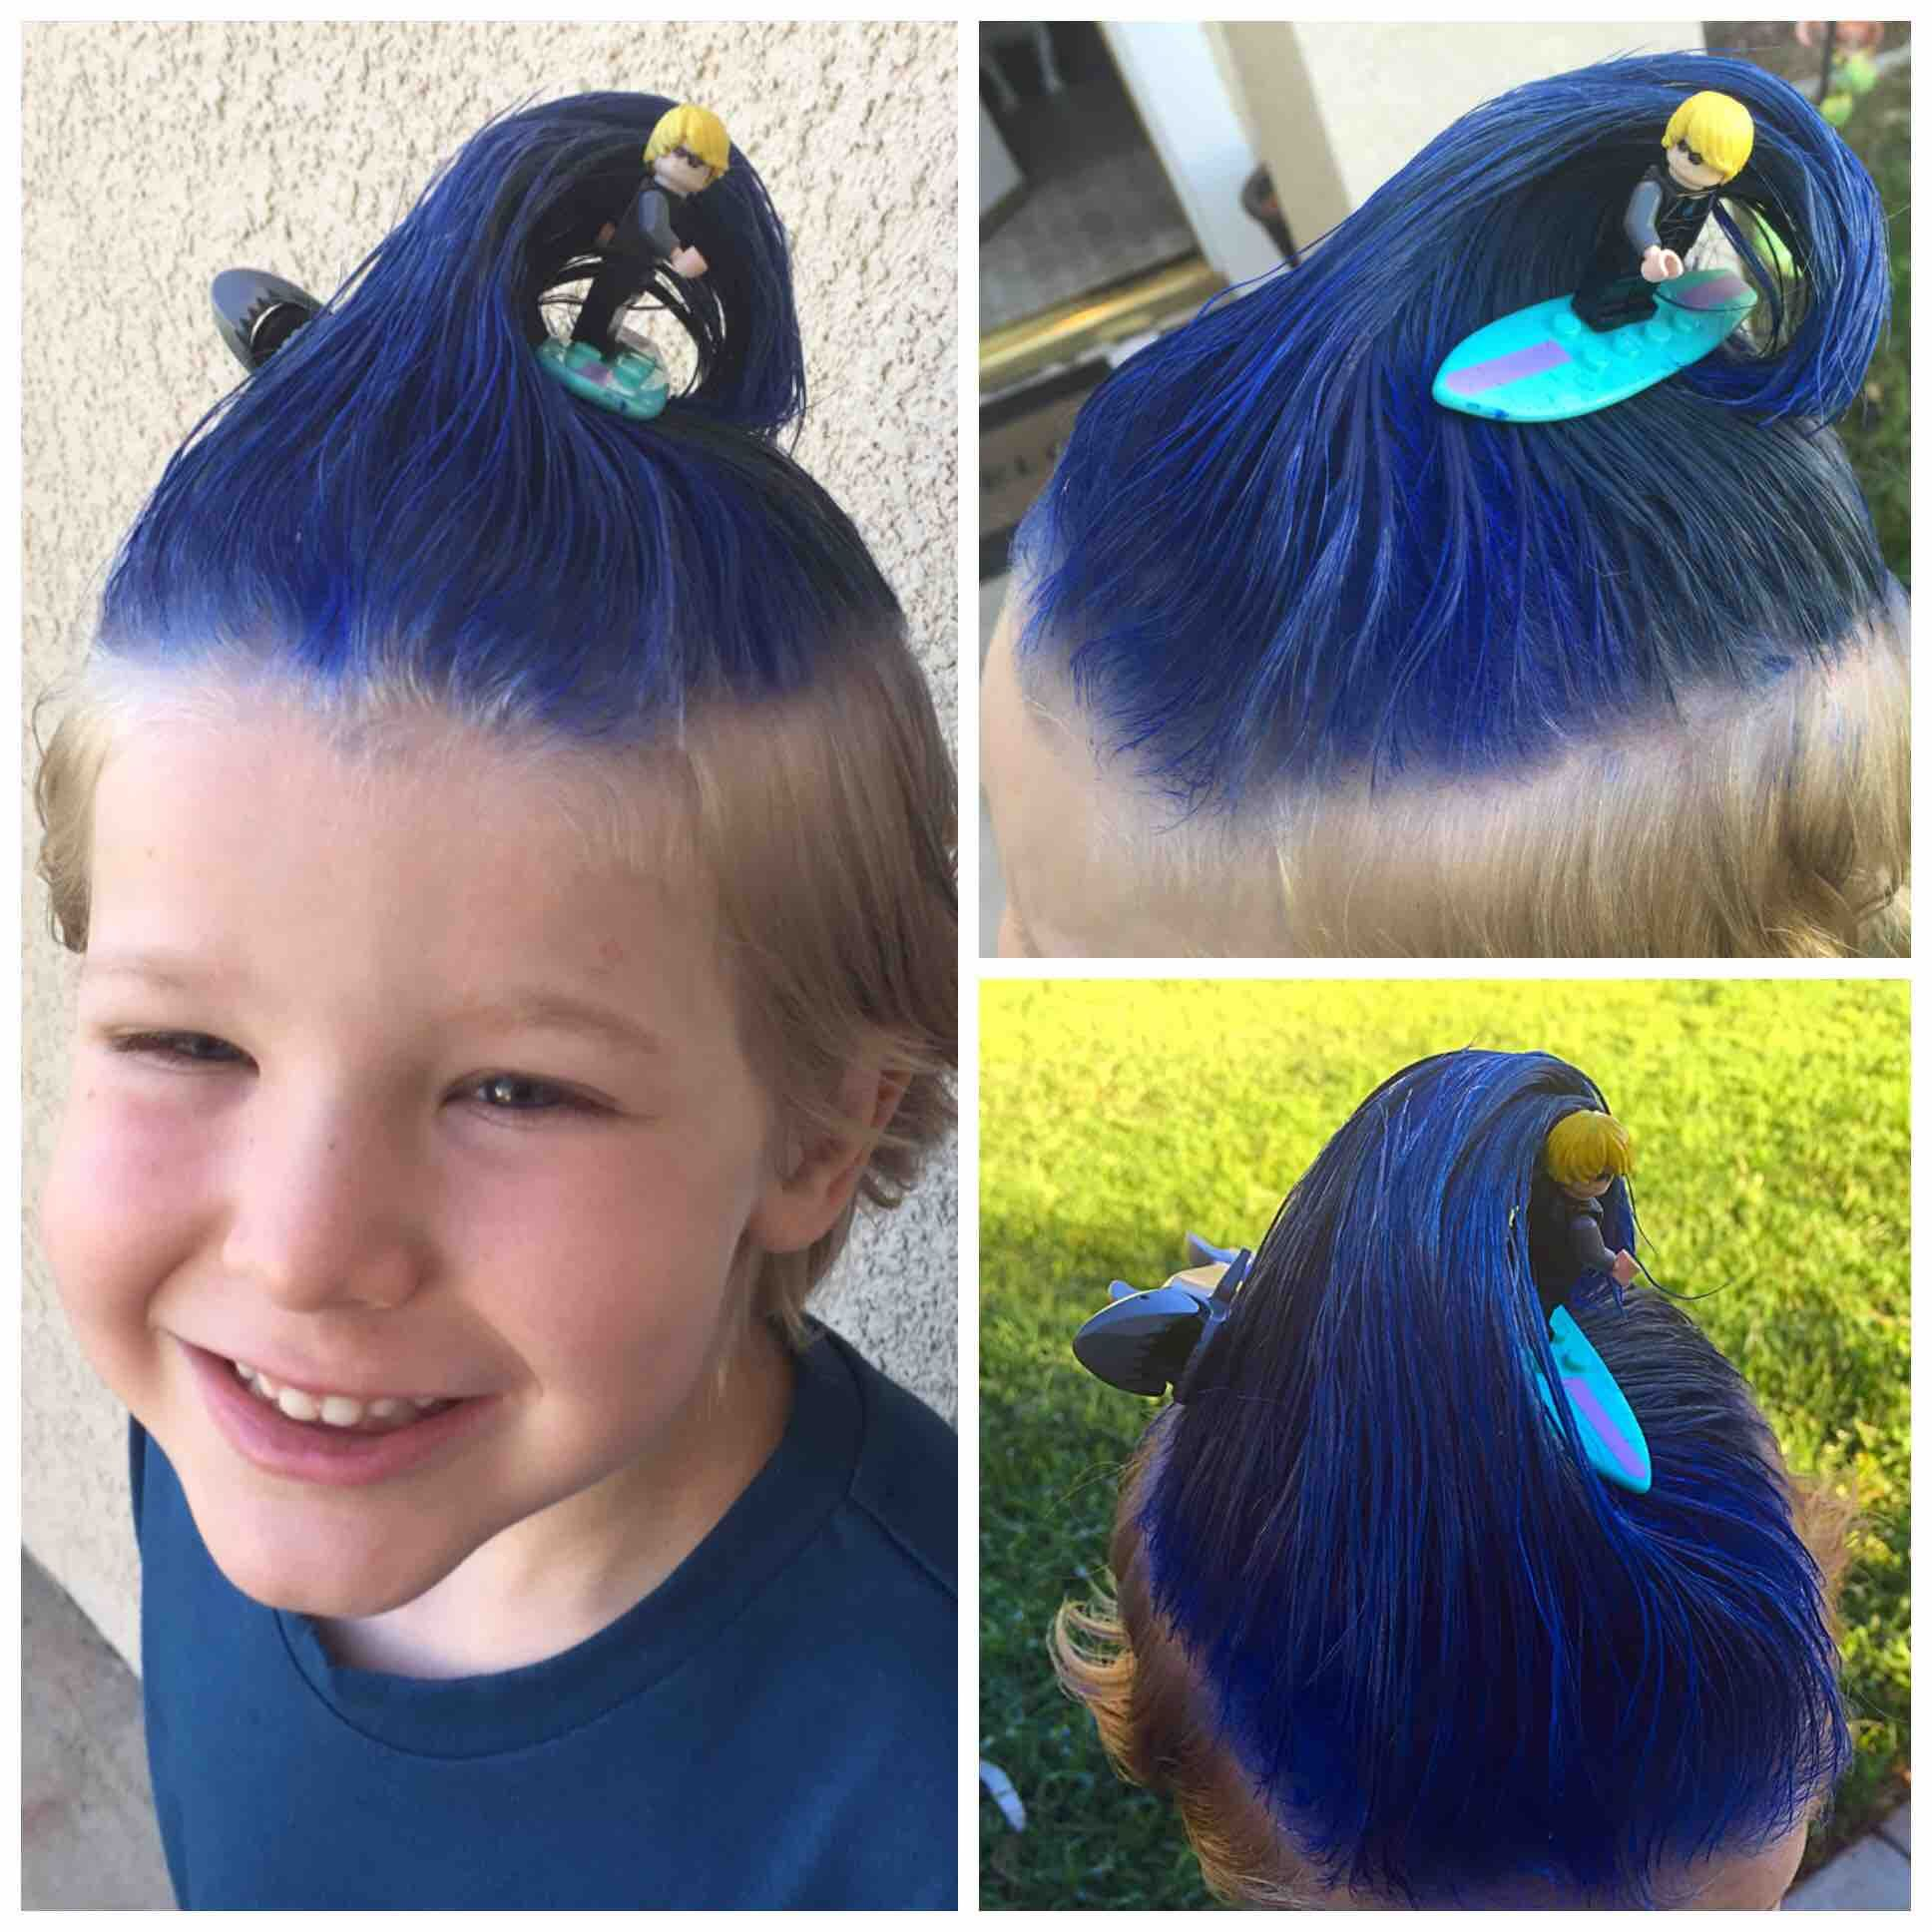 """My 6 year old ready to own """"Crazy hair day"""" in his kindergarten class."""